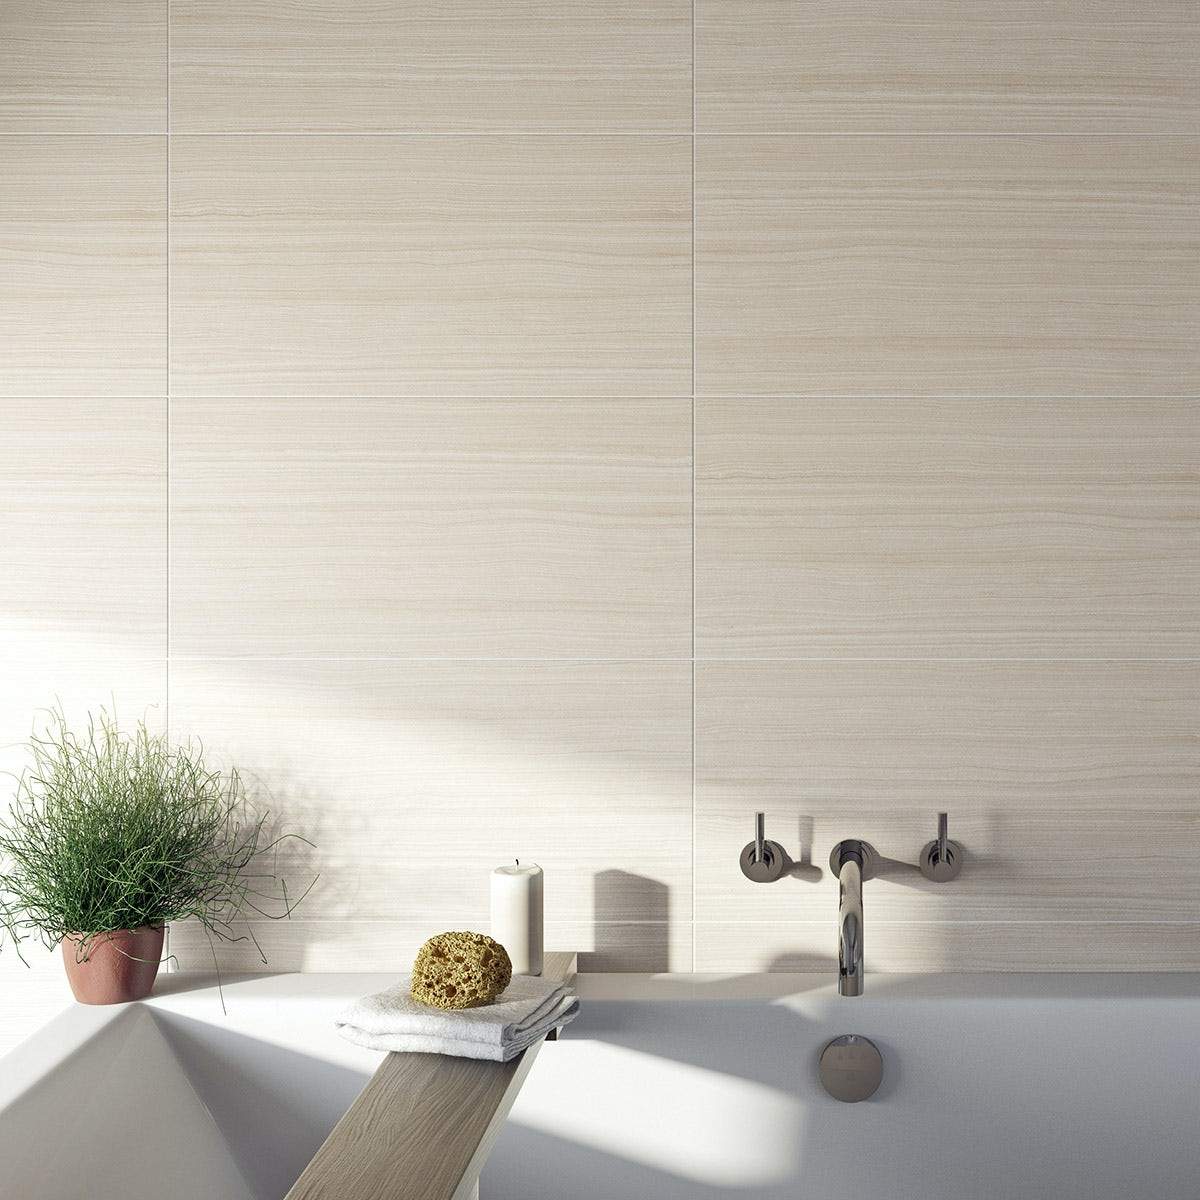 British Ceramic Tile Mirage beige gloss tile 298mm x 598mm - Sold by Victoria Plum